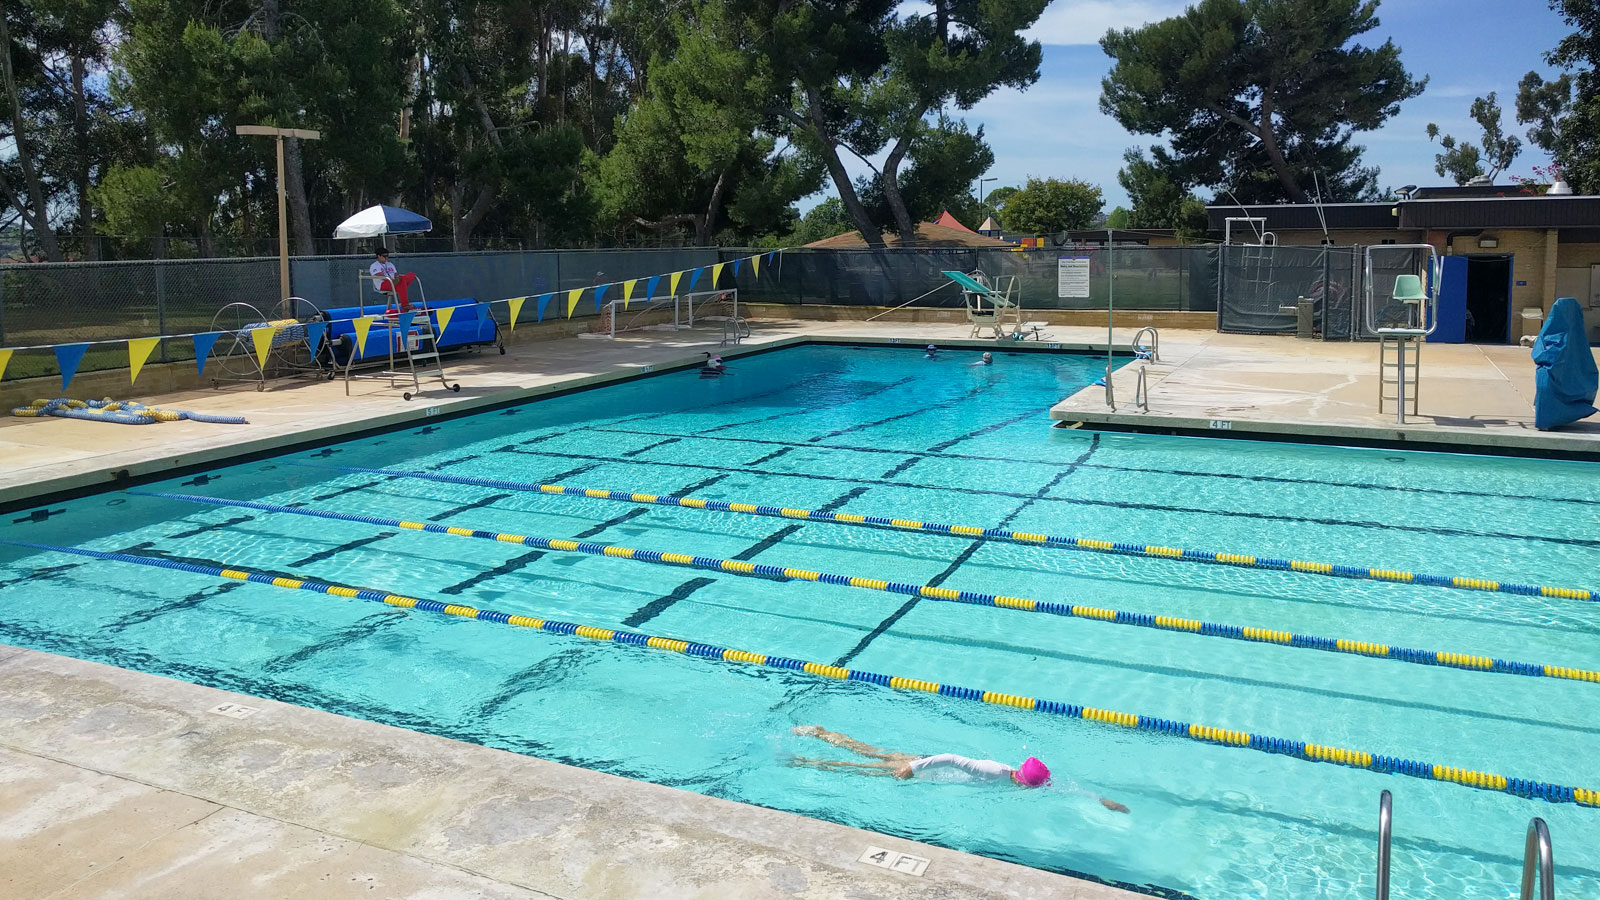 Swanson Pool City Of San Diego Official Website